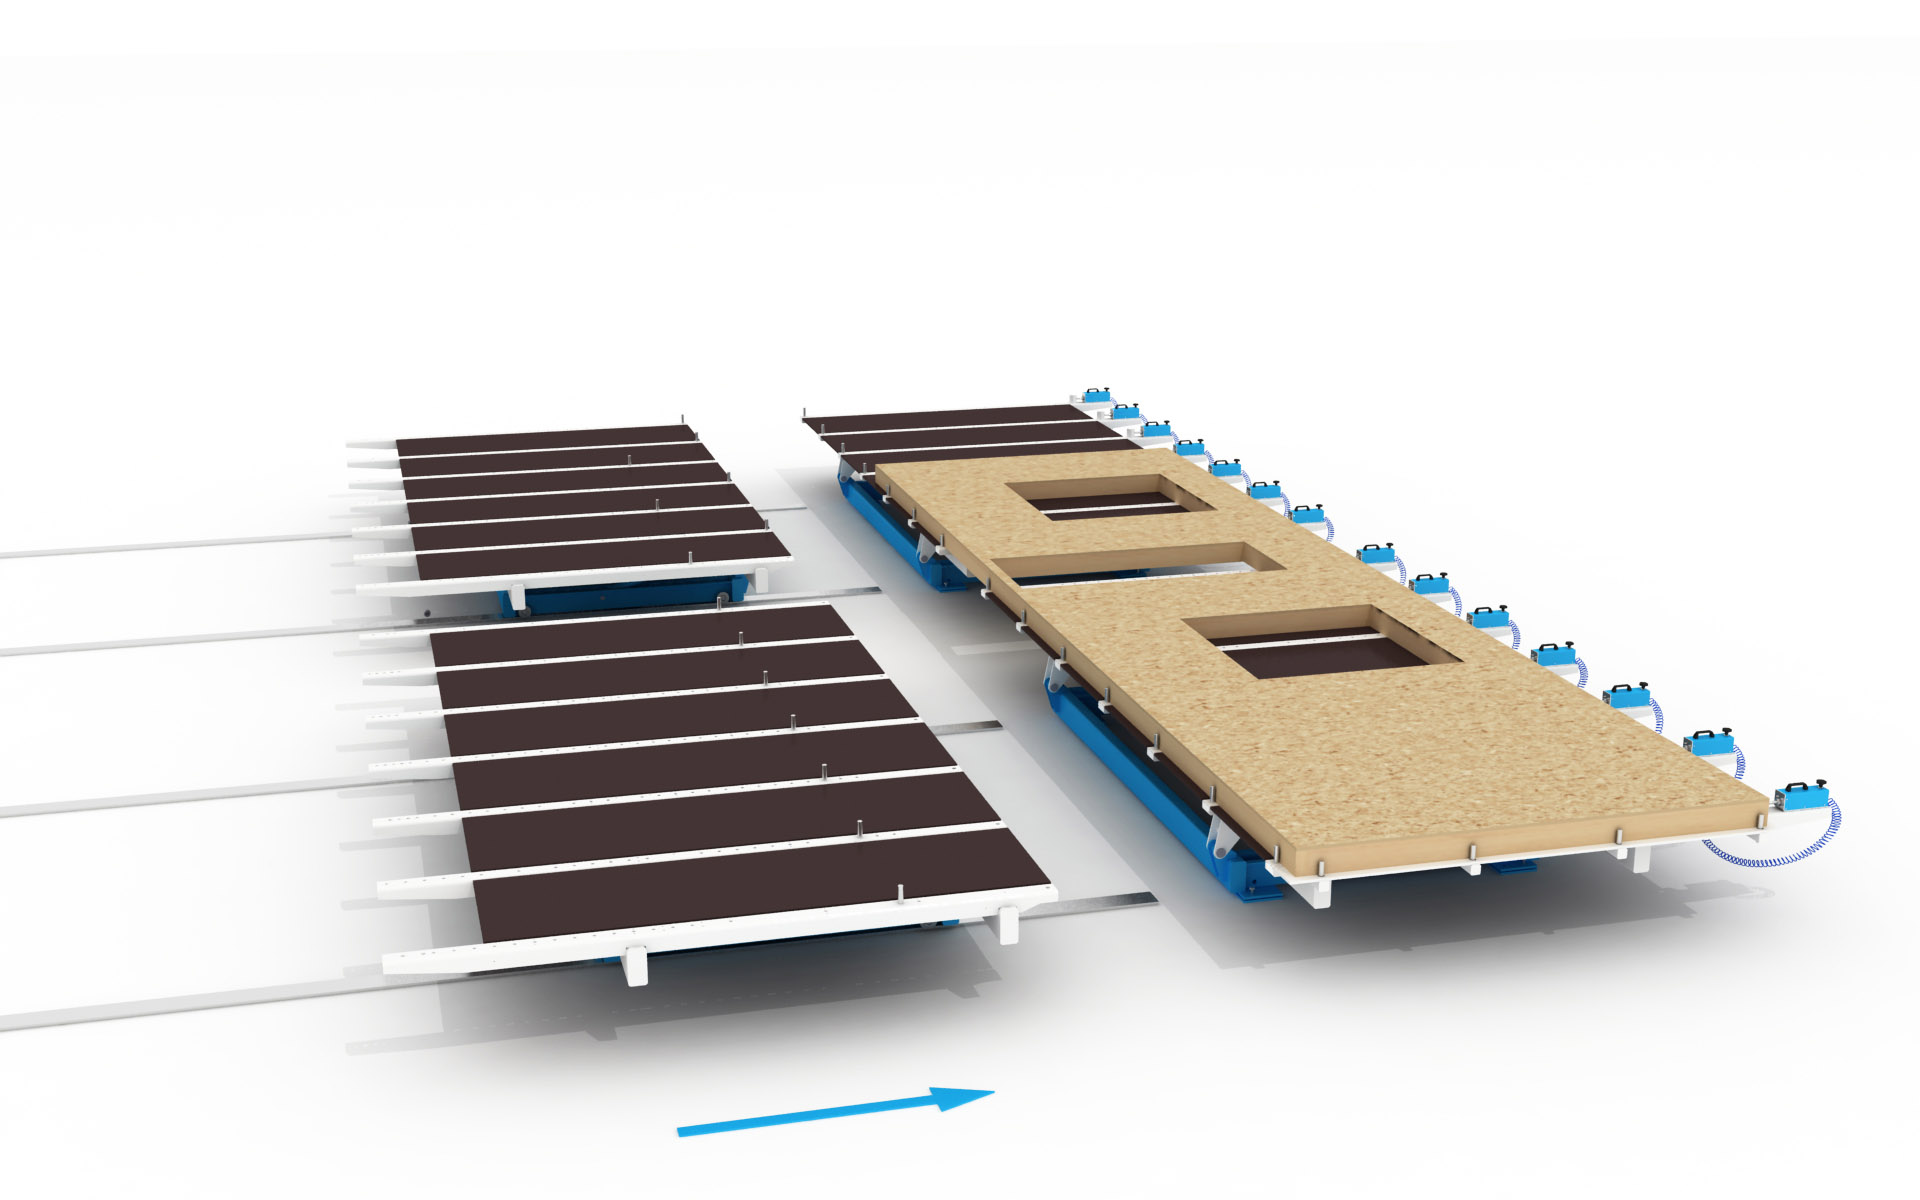 Diagram of WING Butterfly Lifting Table flipping Prefabricated Wall Panels